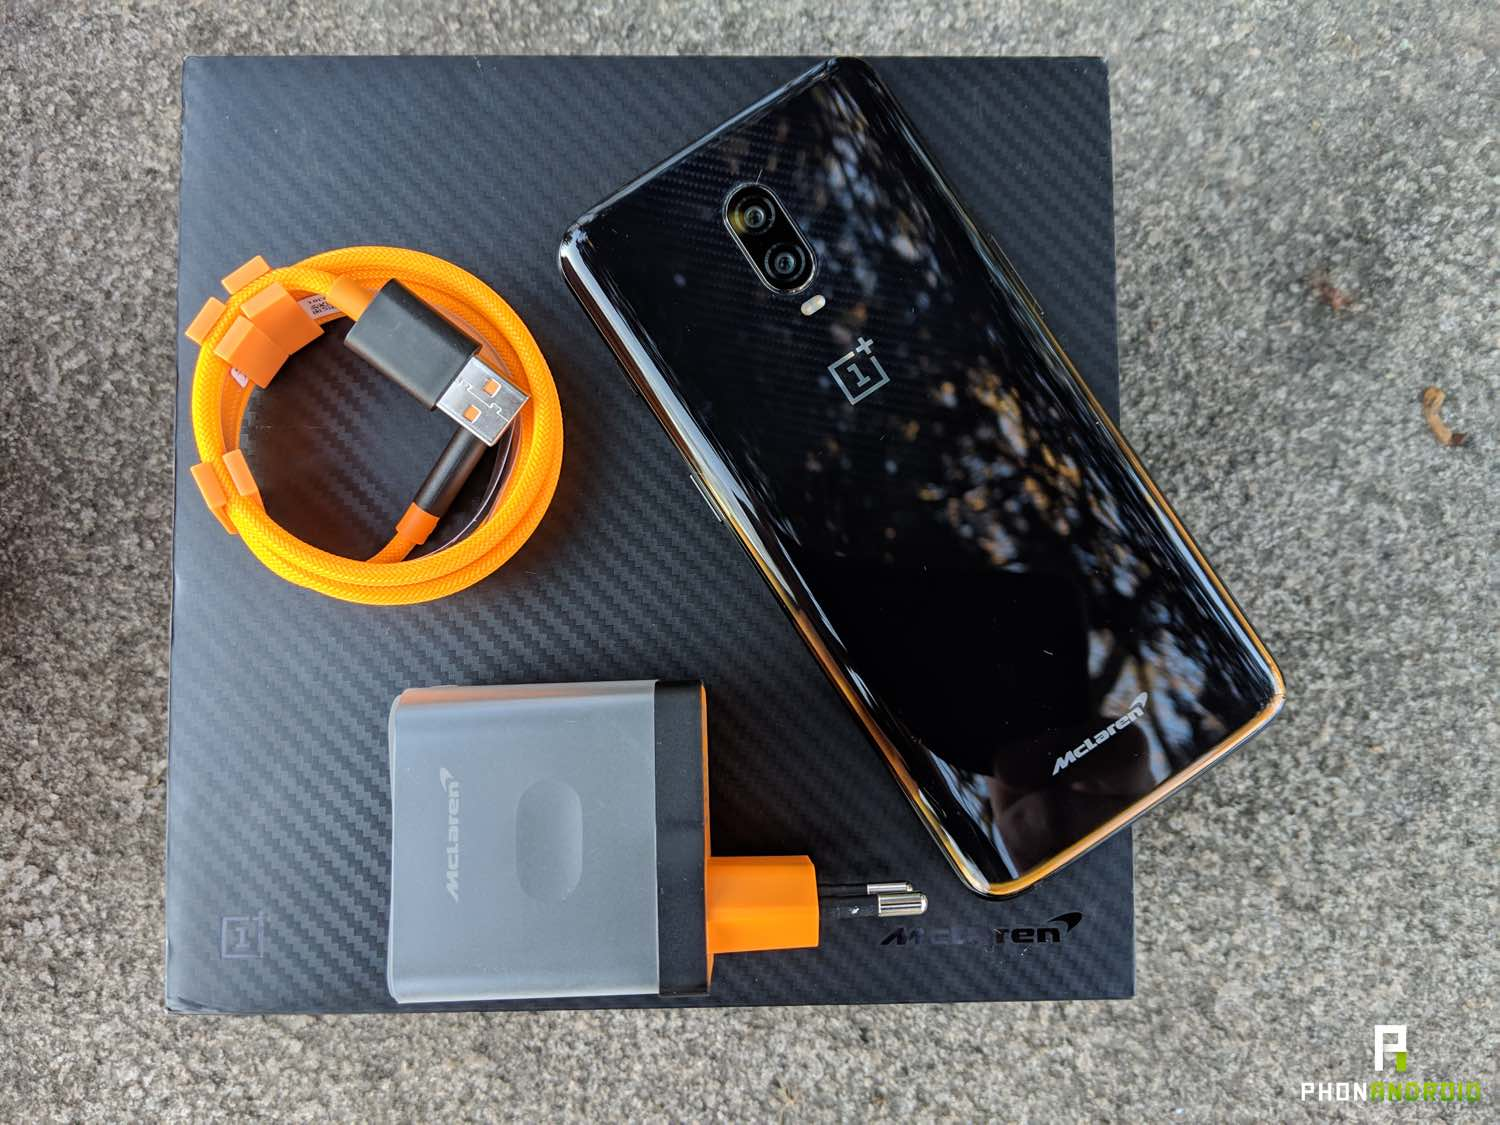 test oneplus 6t McLaren edition warp charge